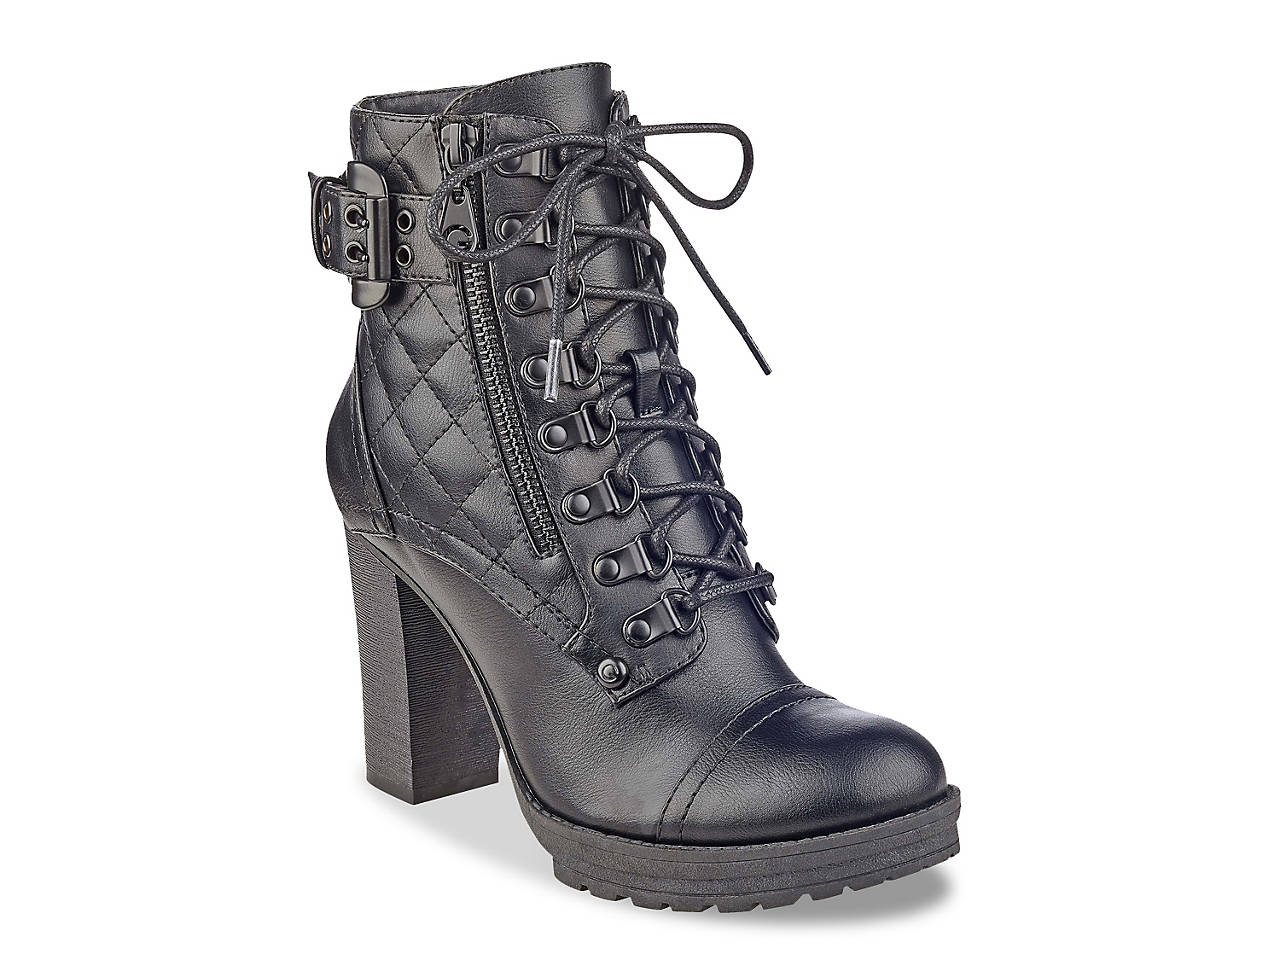 19233bd84bf G by GUESS Gloss Combat Boot Women s Shoes